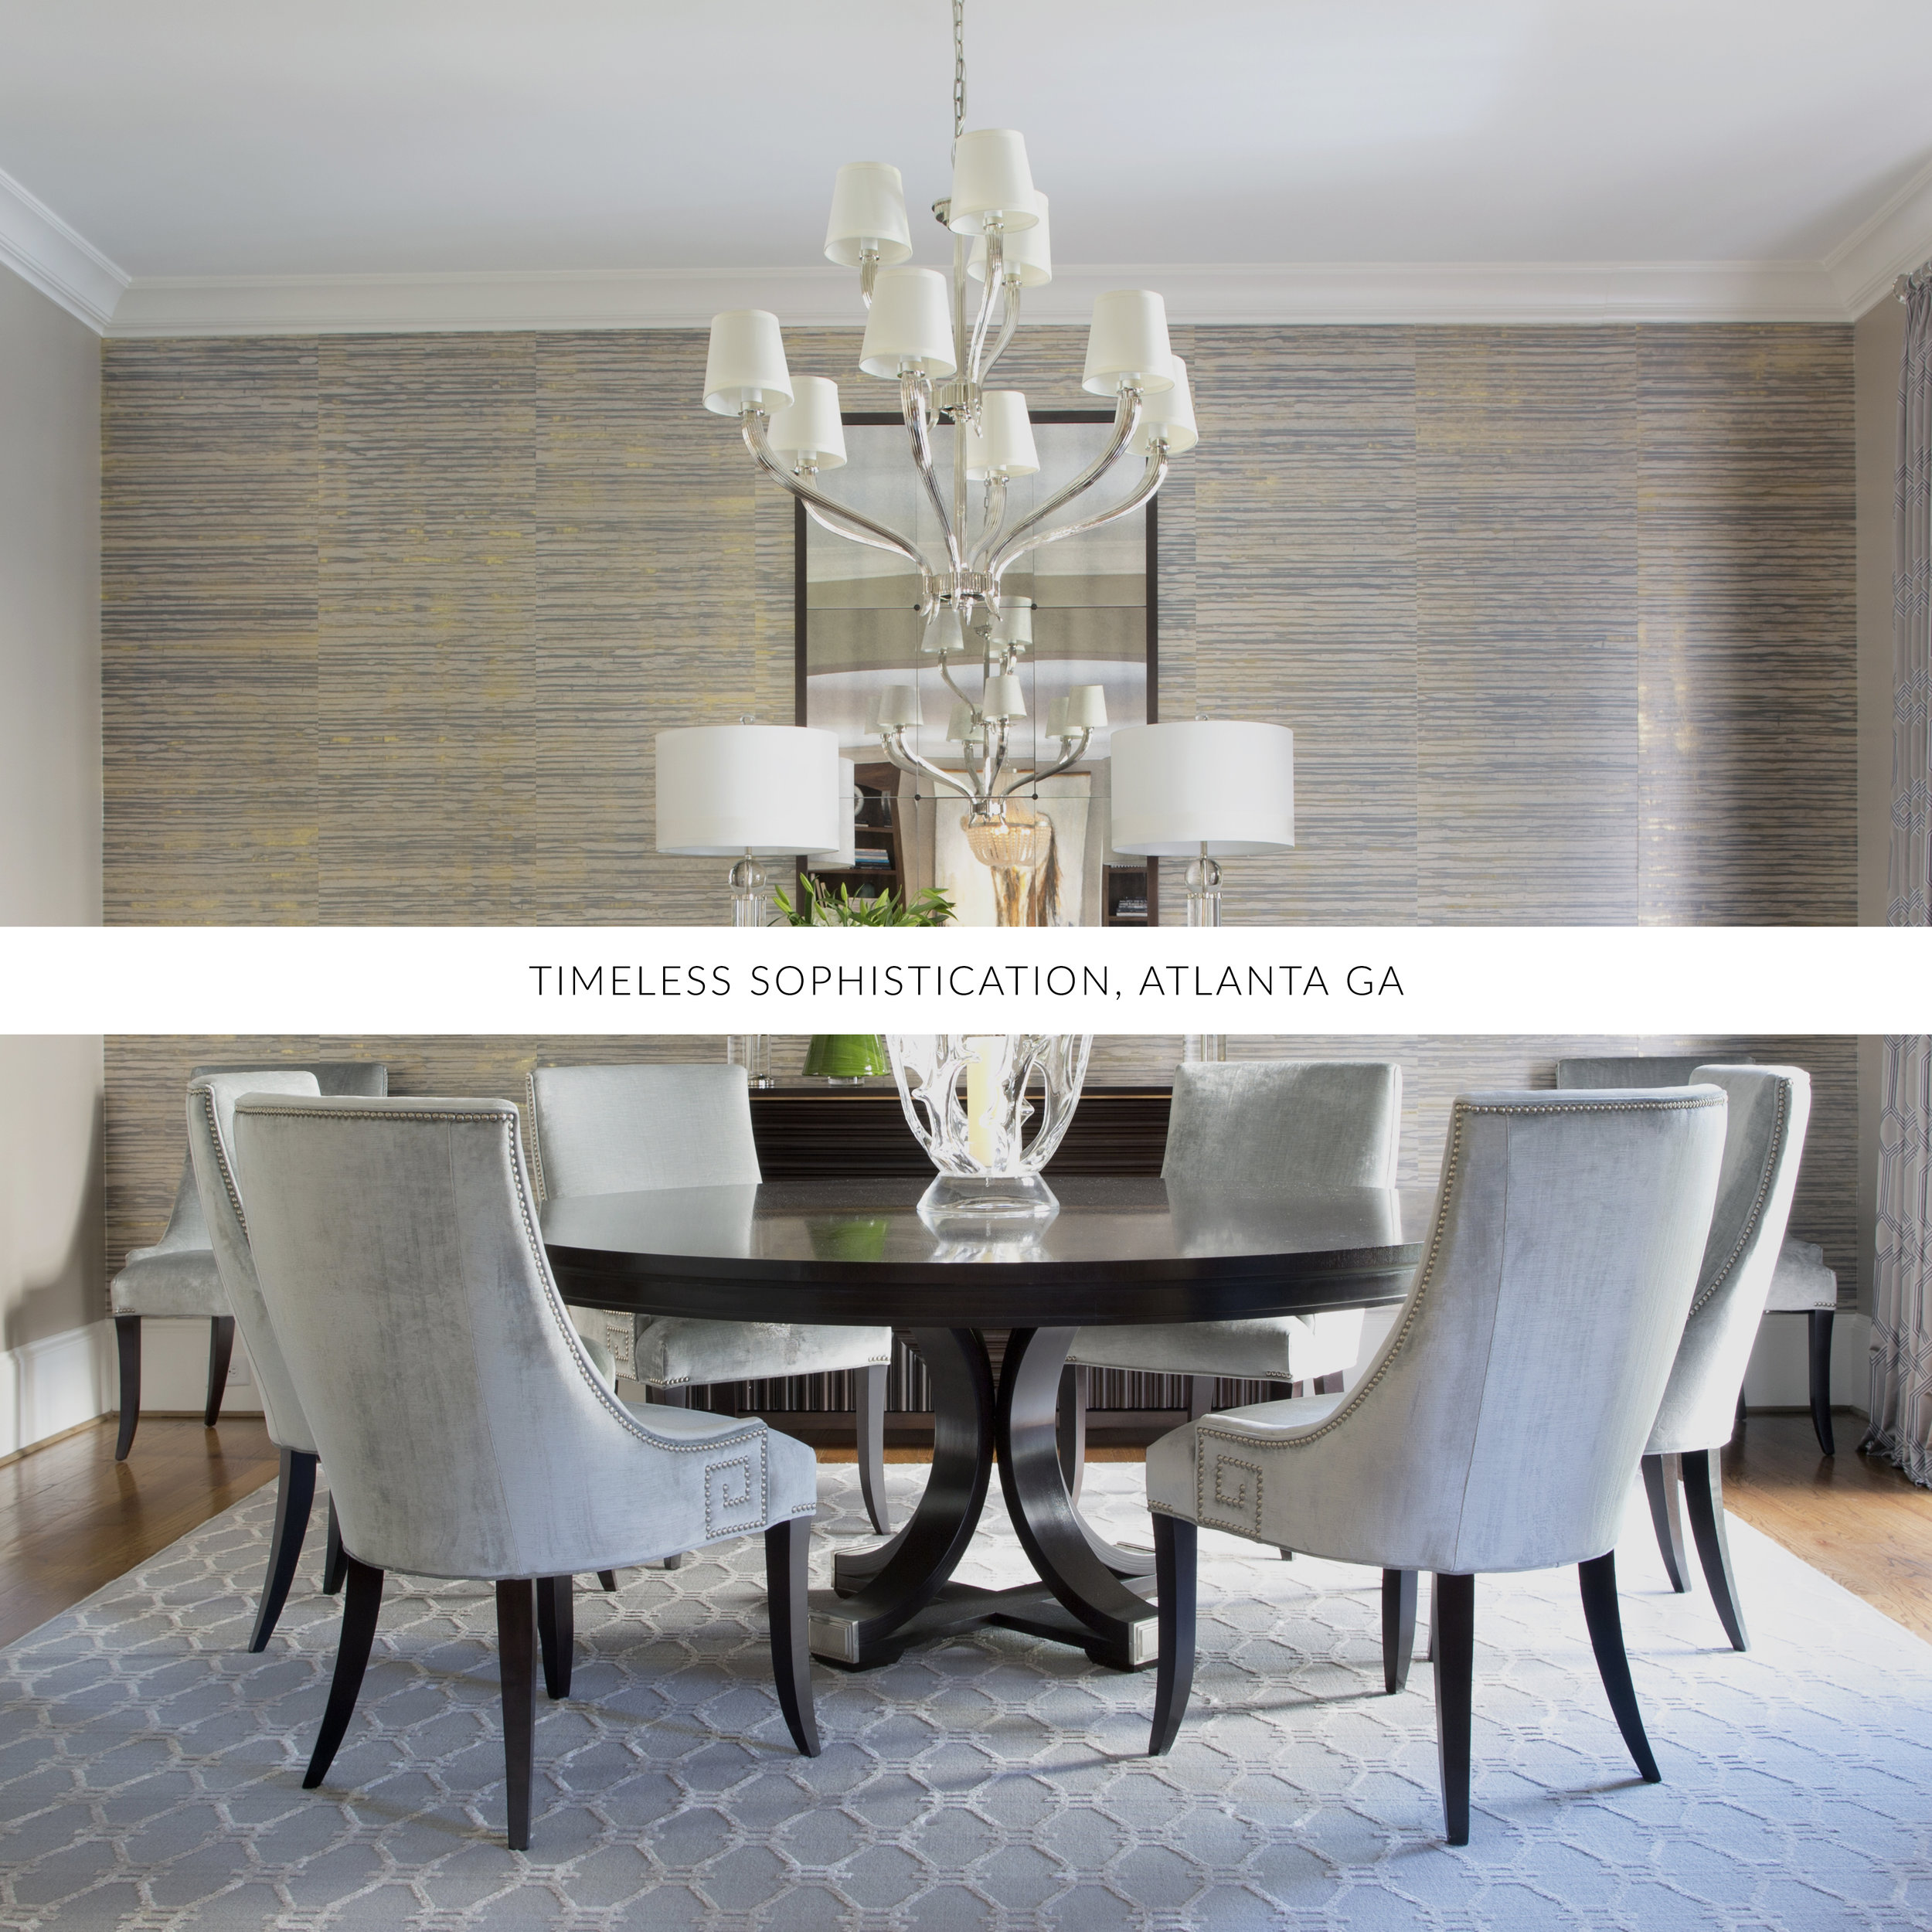 © Timeless Sophistication, Traci Rhoads Interior Design, Private Residences and Golf &Country Clubs, Athens, GA